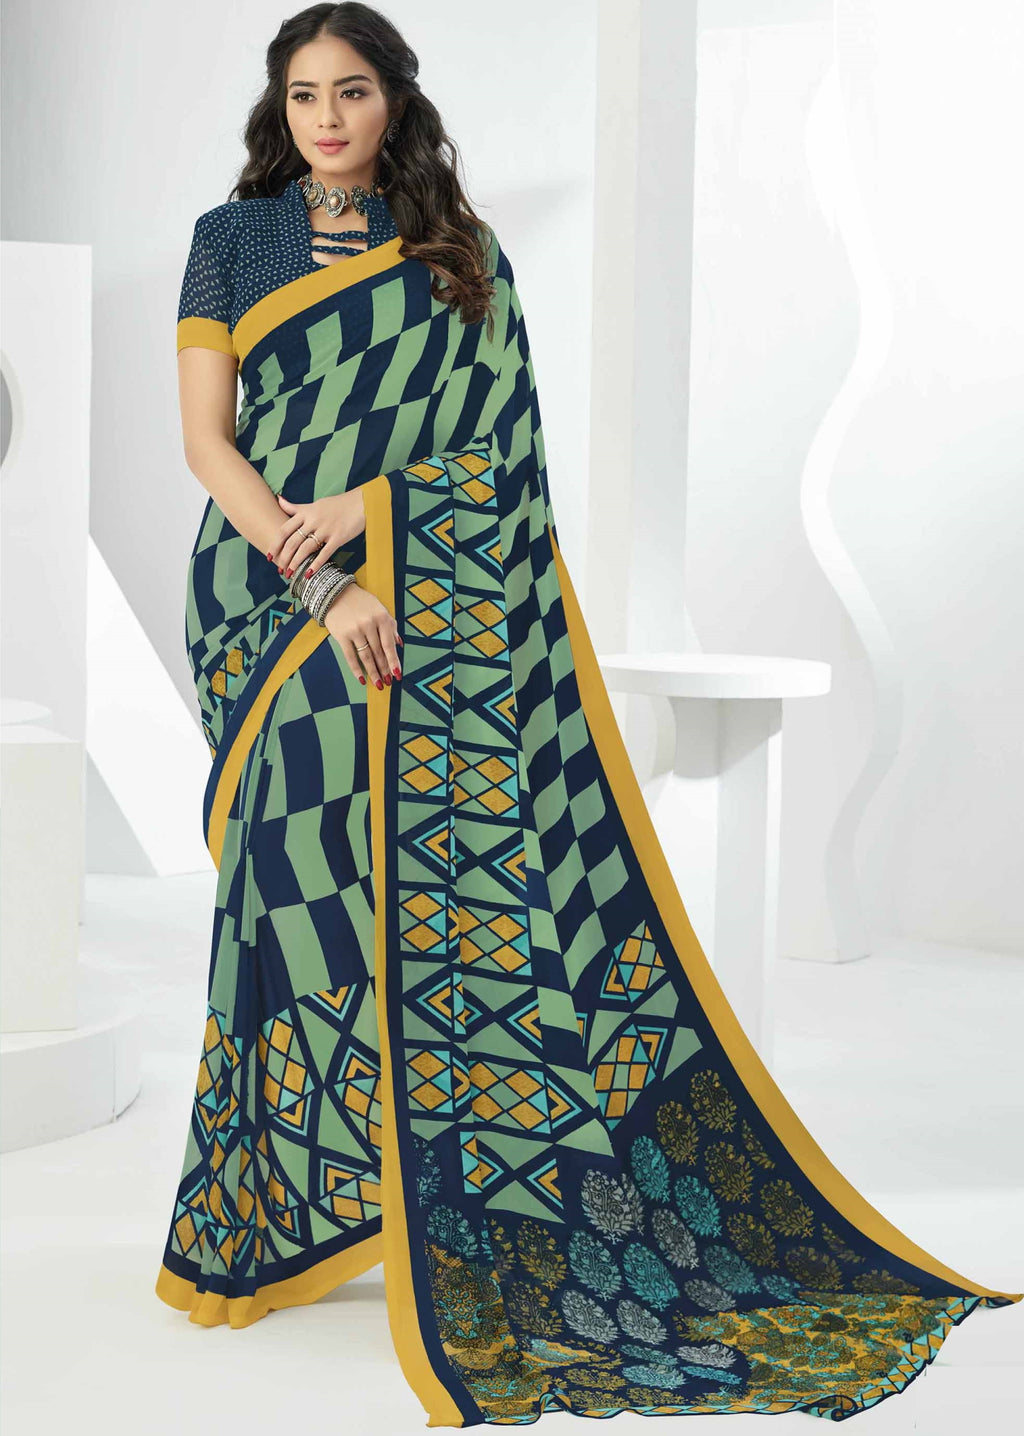 Blue & Aqua Green Color Georgette Beautiful Daily Wear Sarees NYF-6305